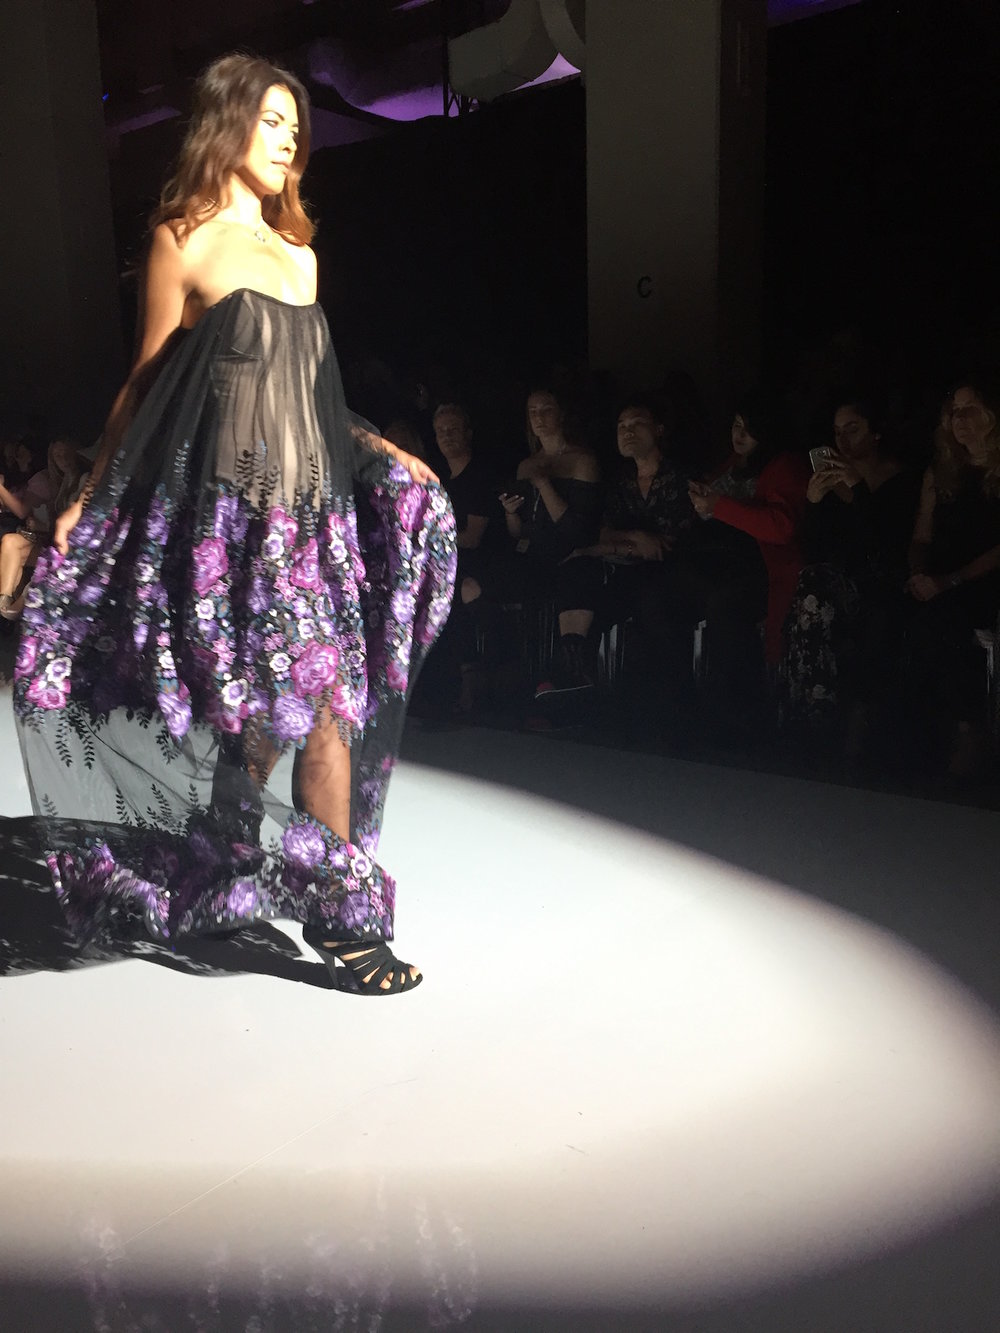 A dress from Lesley Hampton's Spring/Summer 2018 runway collection presented at TW Toronto Women's Fashion Week in October 2017